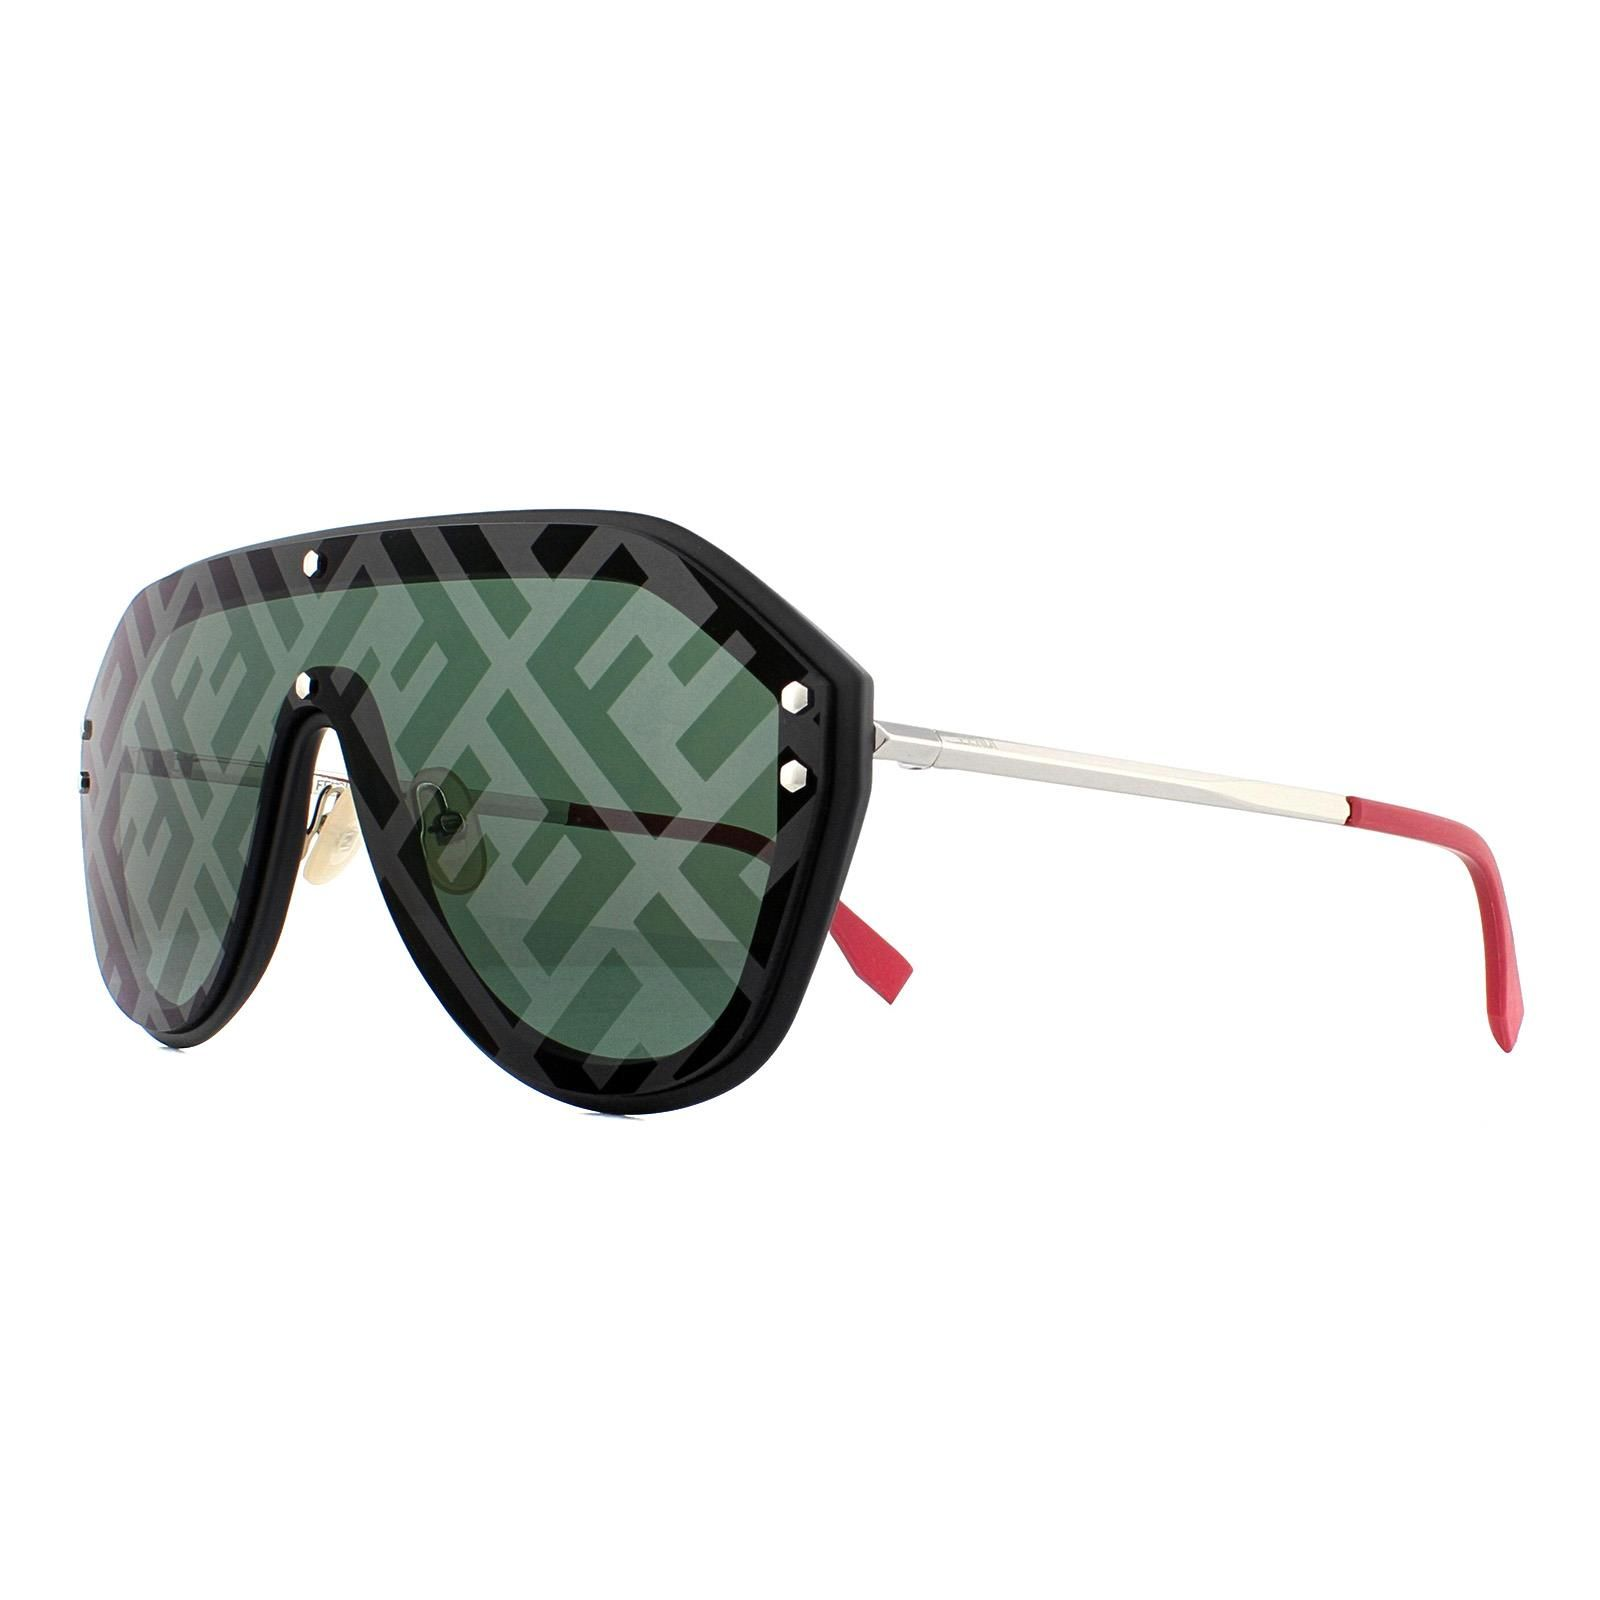 Fendi Sunglasses M0039/G/S 807 XR Black Silver and Red Grey with Monogram Mirror